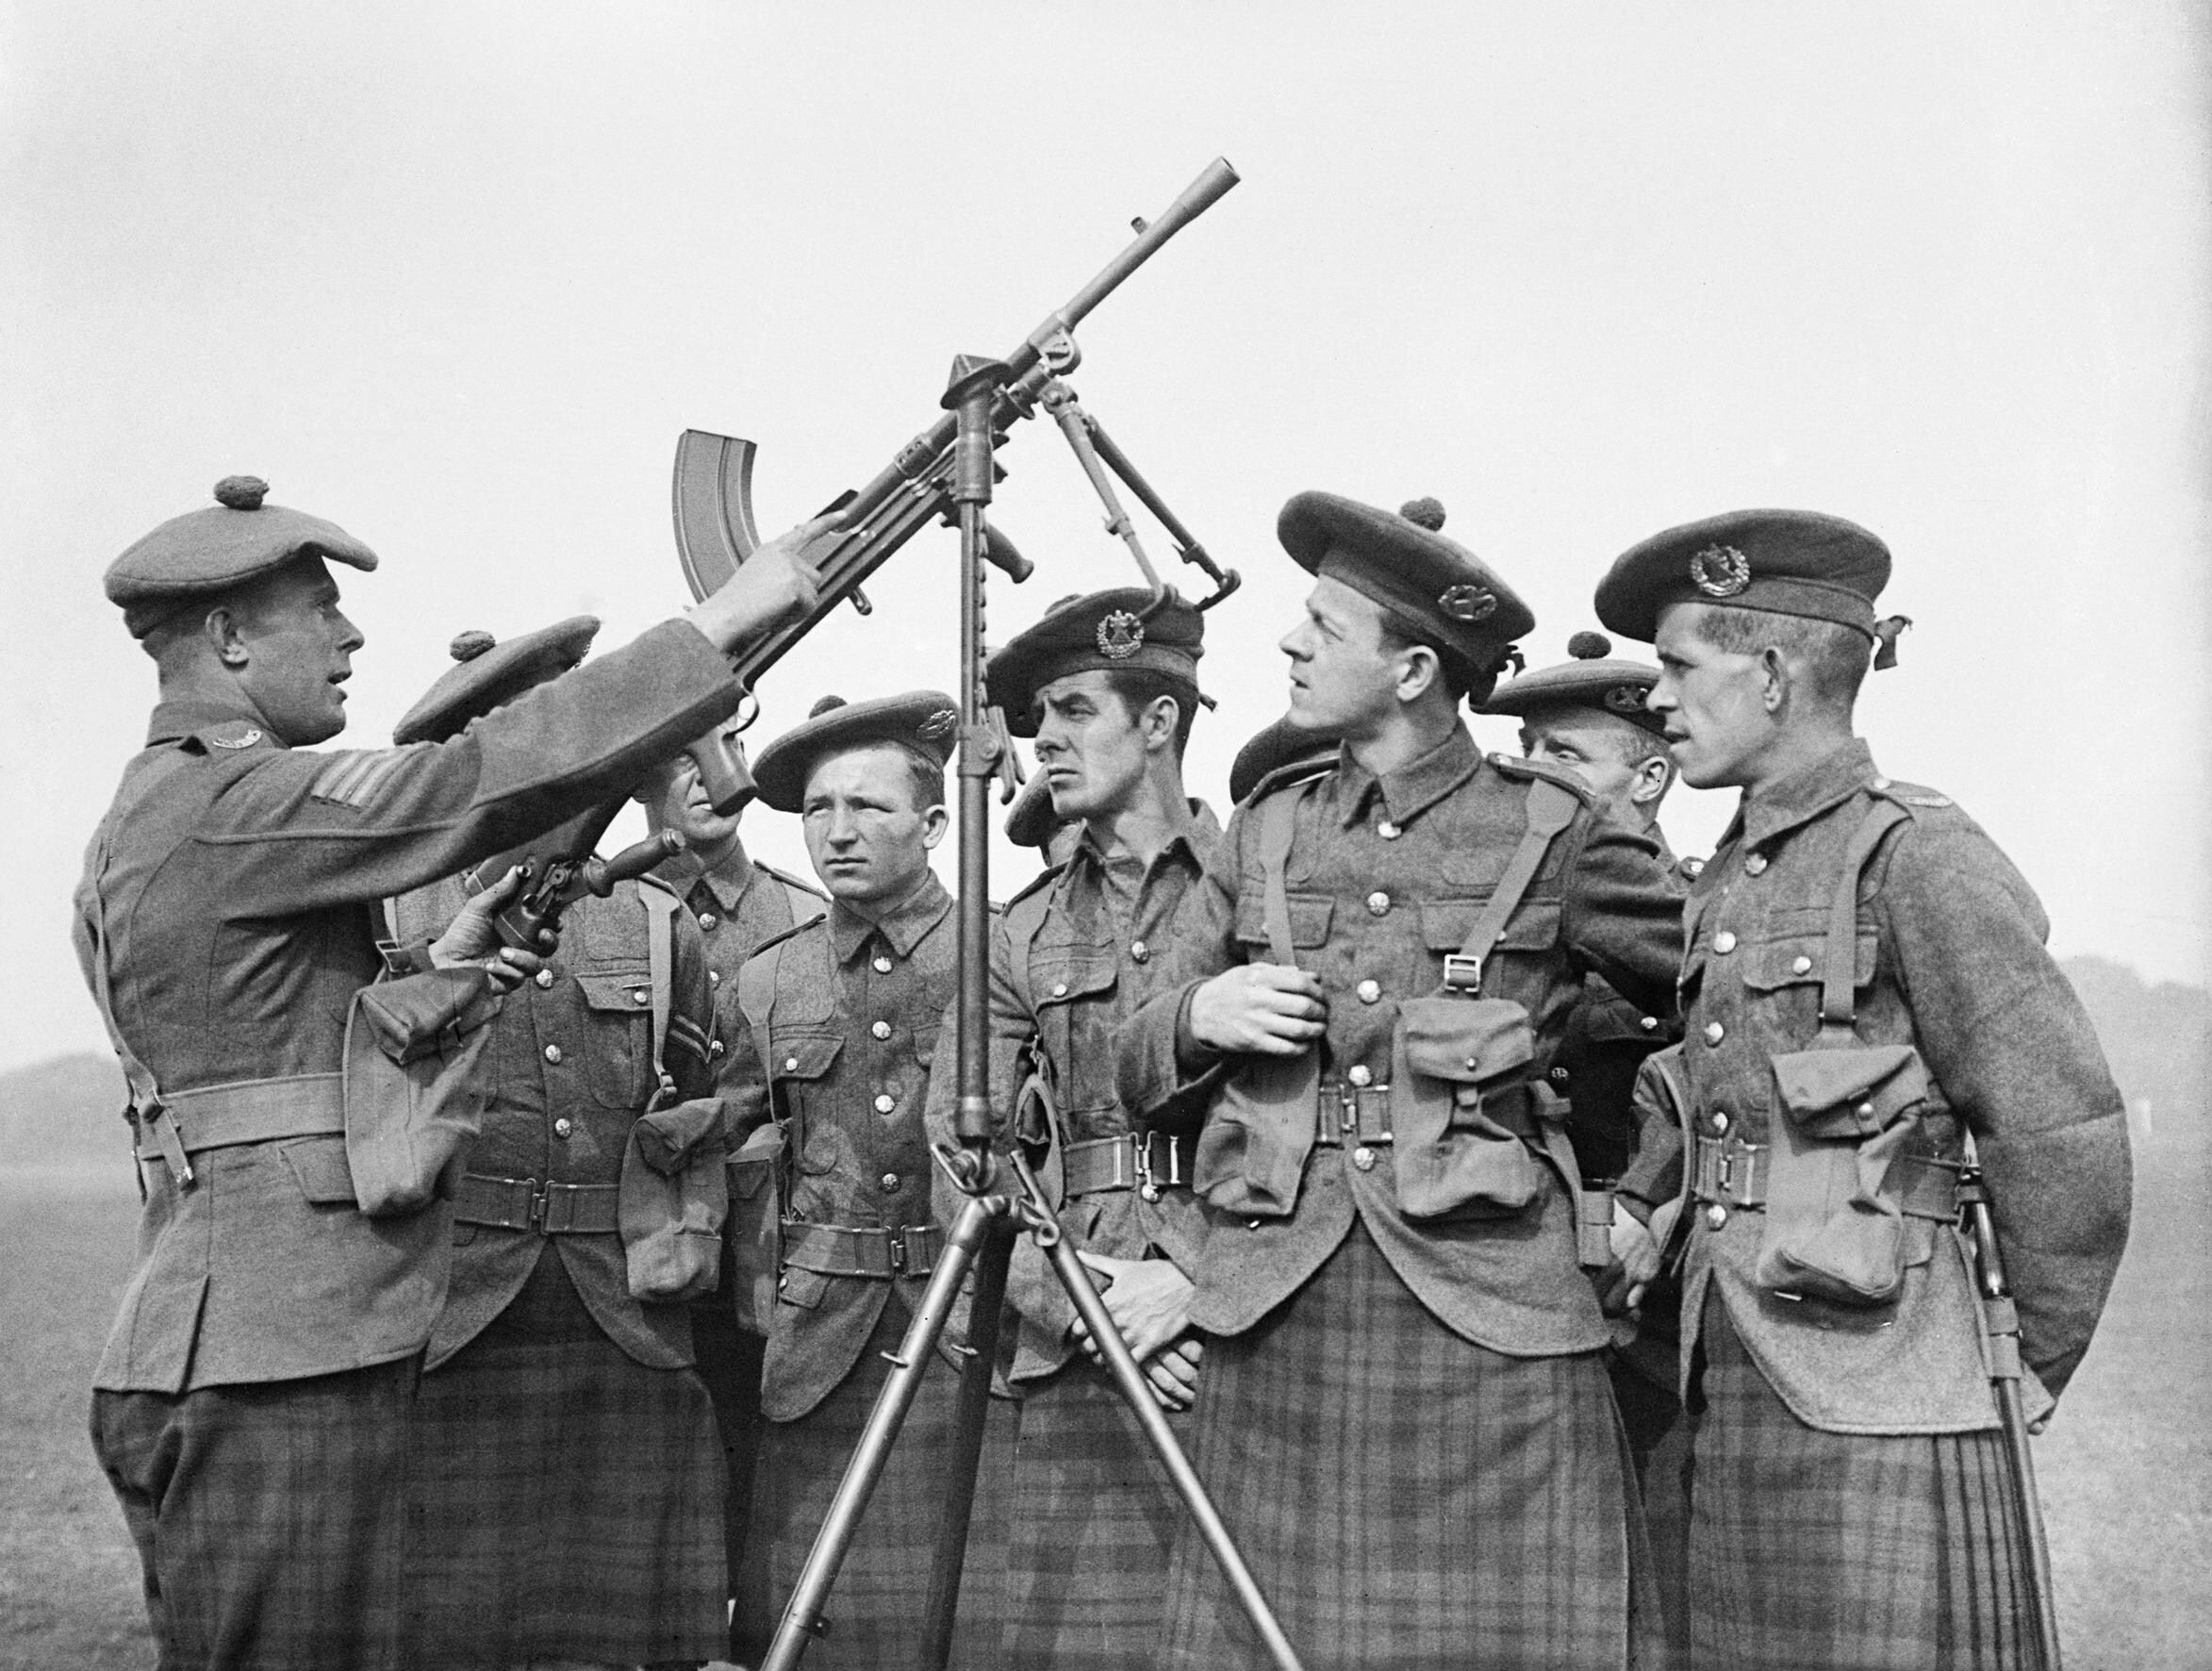 Soldiers of the 1st Battalion Cameron Highlanders receive instruction on a Bren gun fitted on an anti-aircraft mounting at Aldershot, 1939. H655.jpg